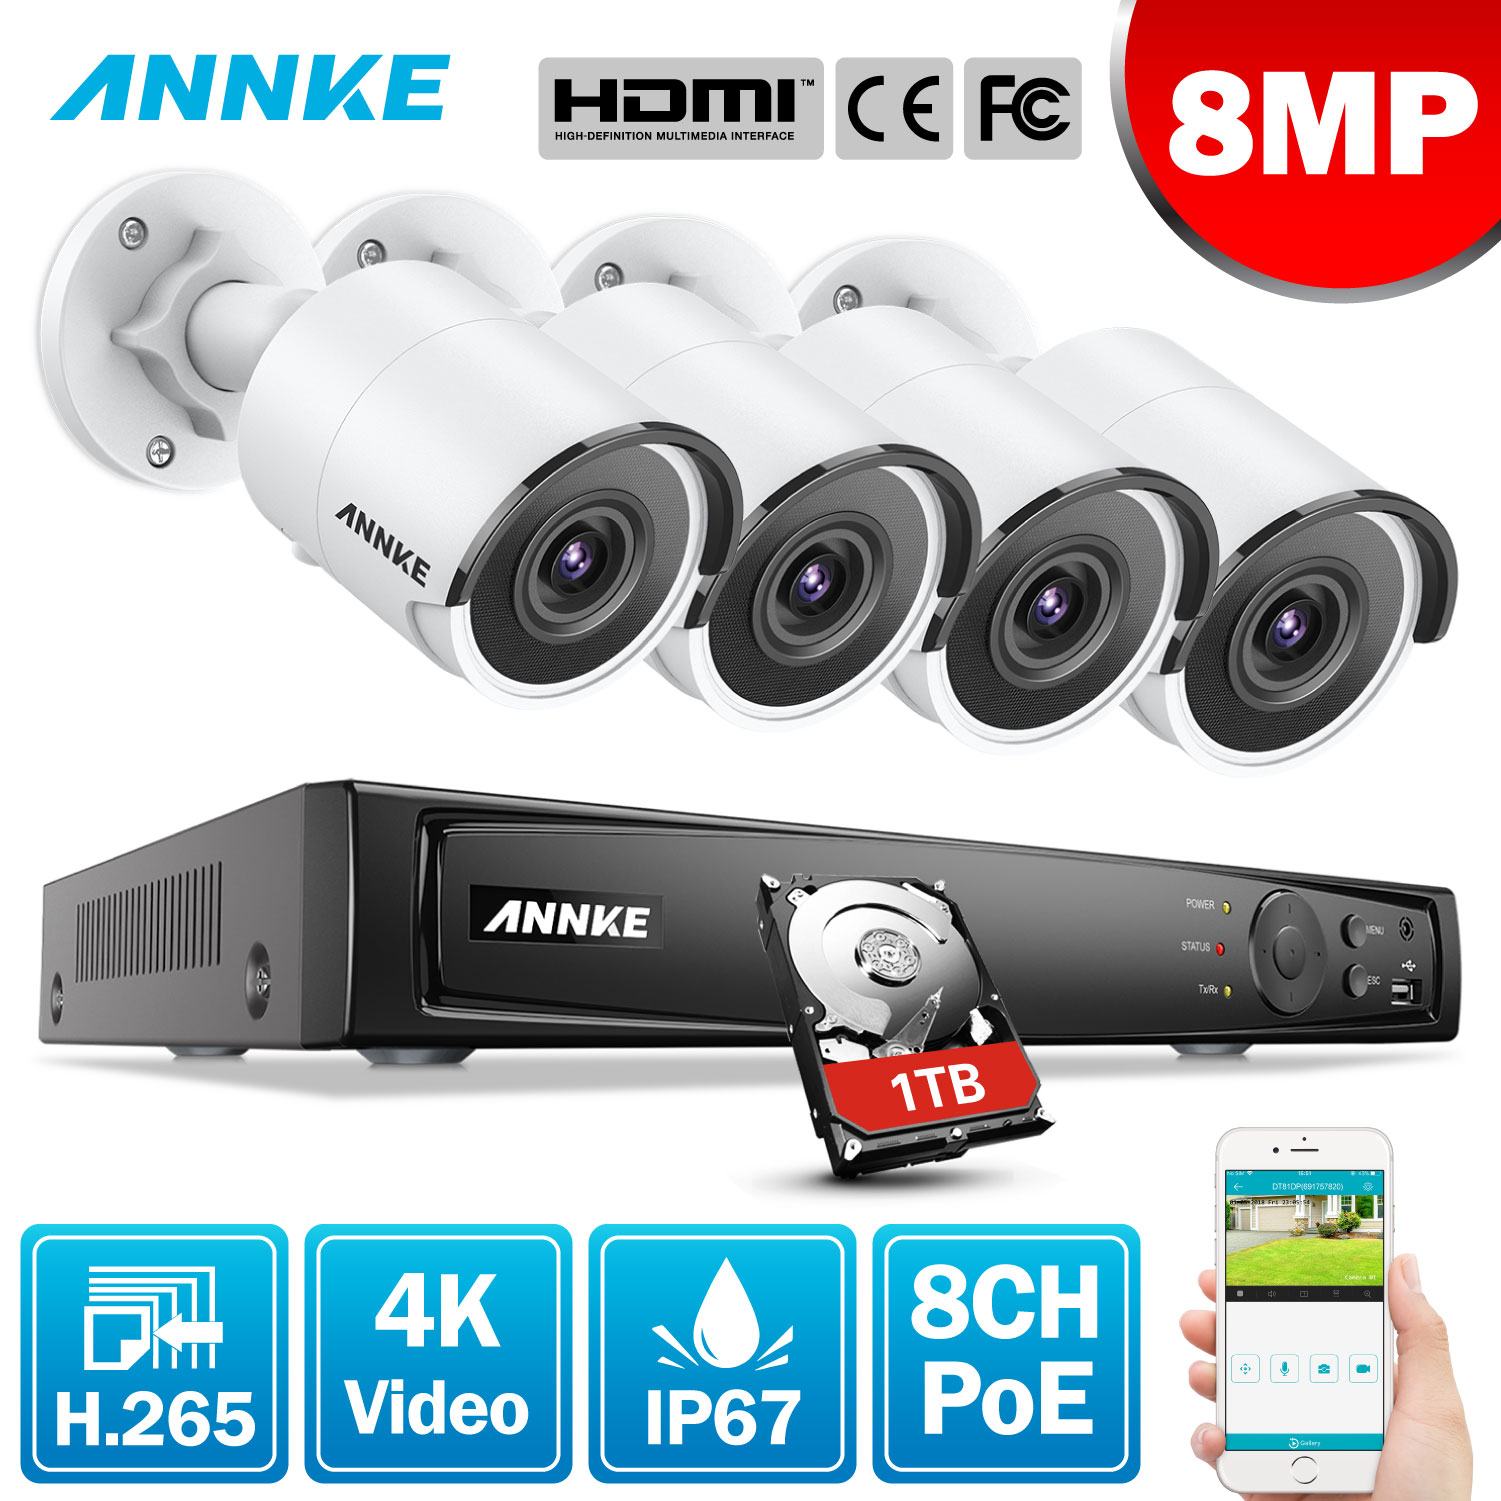 ANNKE 8CH 8MP Ultra HD PoE Network Video Security System 4K H.265 Surveillance NVR 4x8MP HD IP67 POE CCTV Bullet Cameras